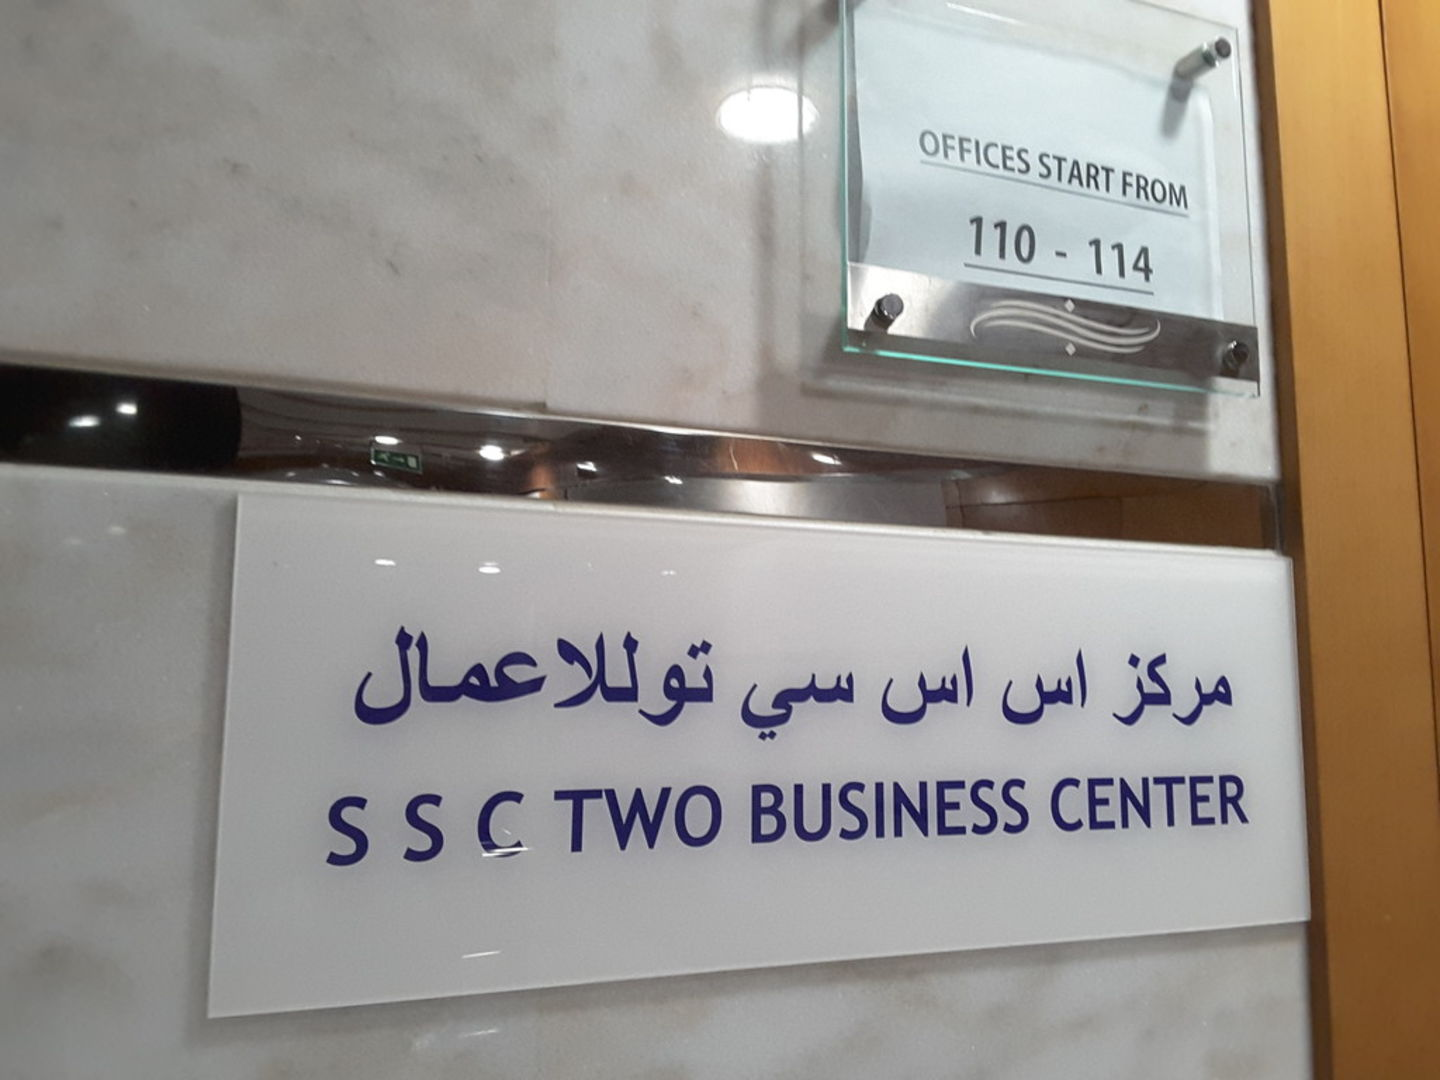 HiDubai-business-ssc-two-business-center-b2b-services-business-consultation-services-al-khabaisi-dubai